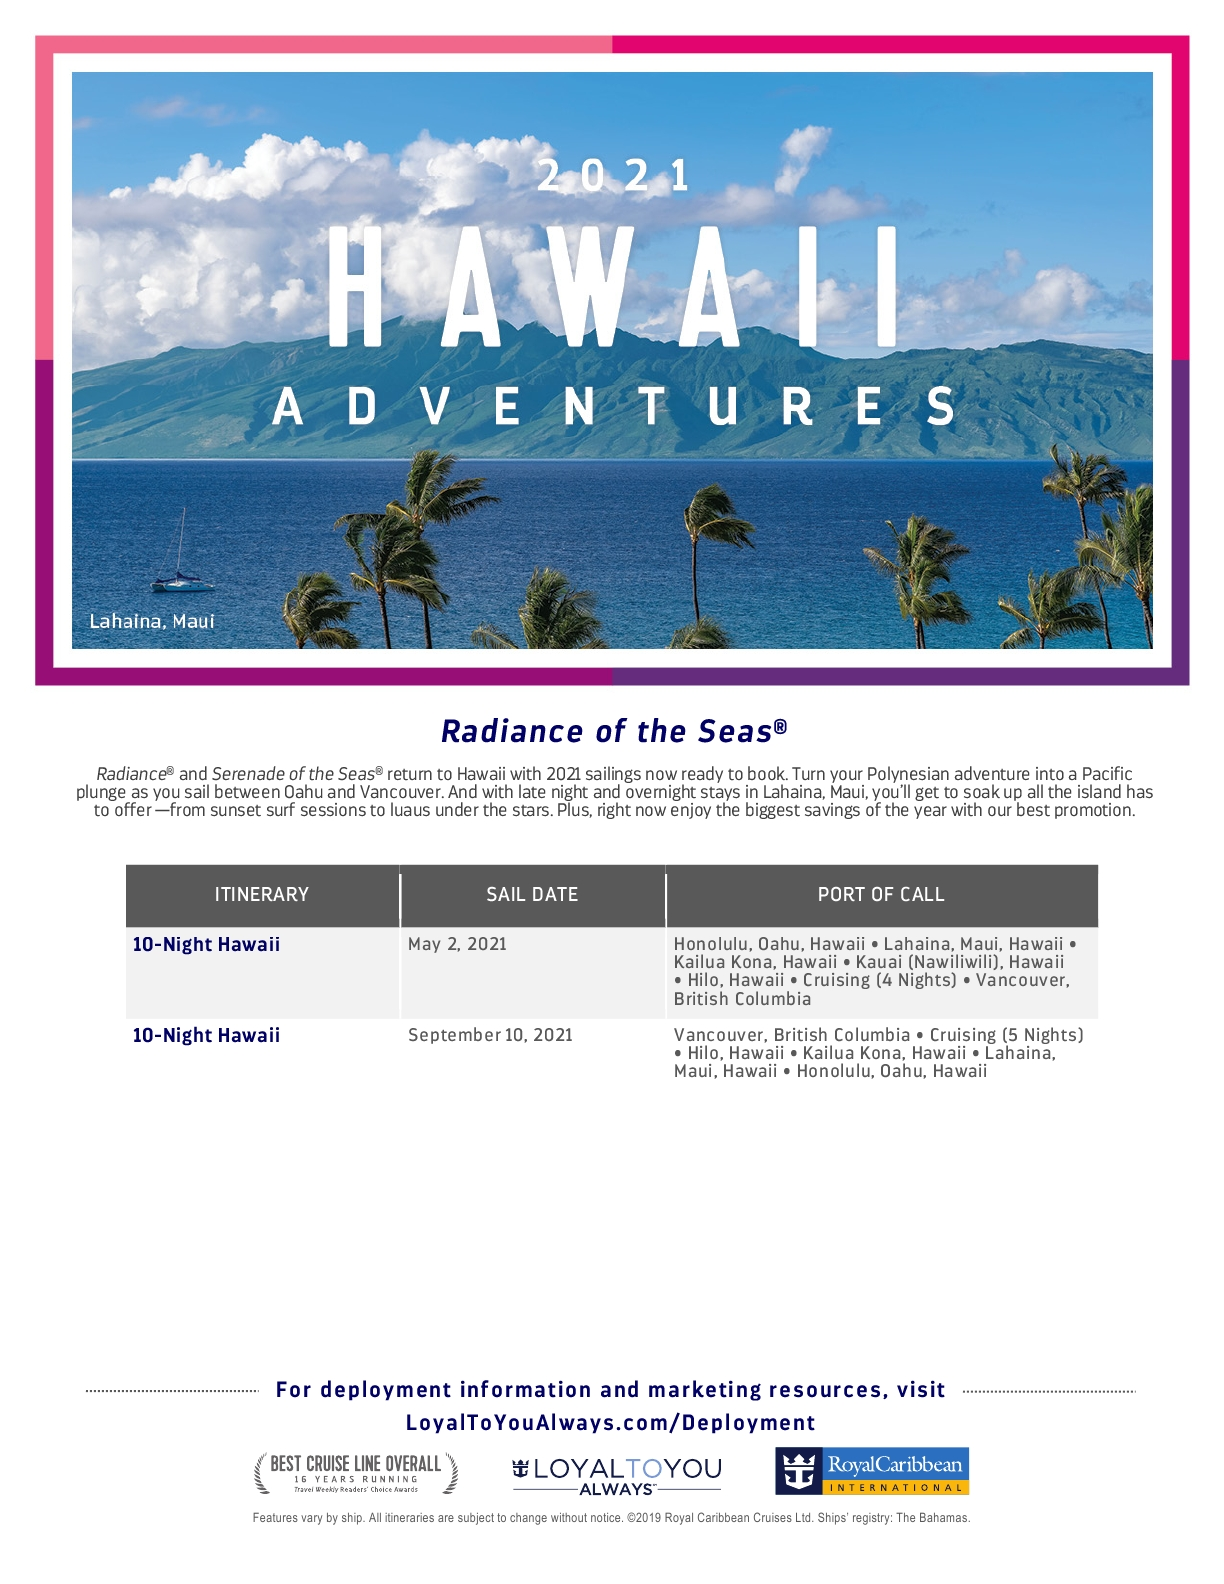 Microsoft Word 19070634 RD Hawaiidocx